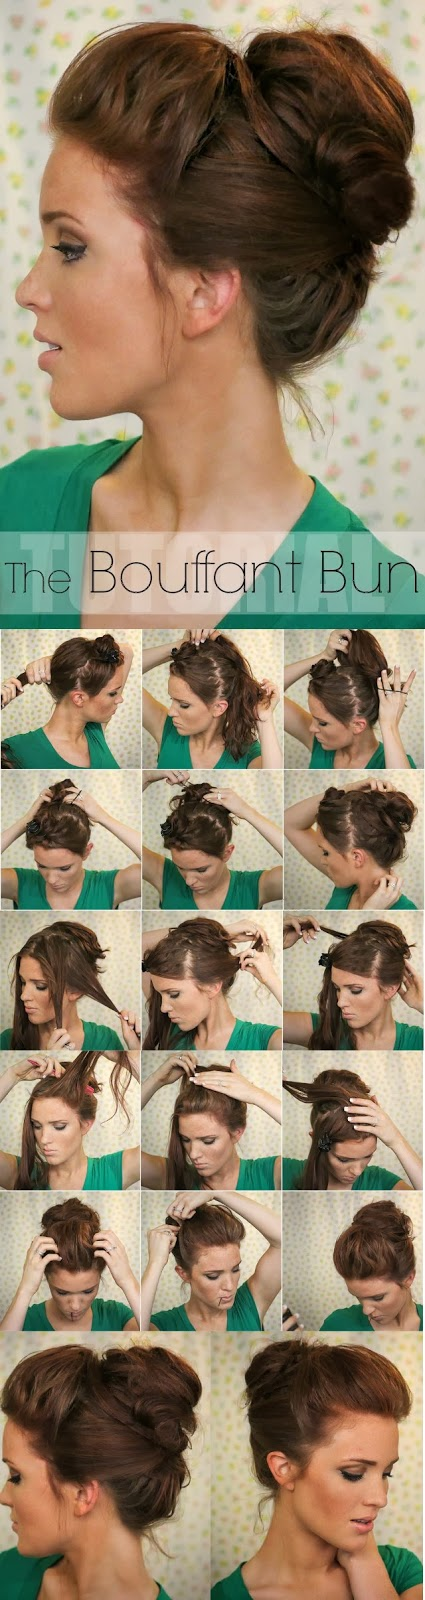 http://www.fashiondivadesign.com/super-easy-knotted-bun-updo-and-simple-bun-hairstyle-tutorials/